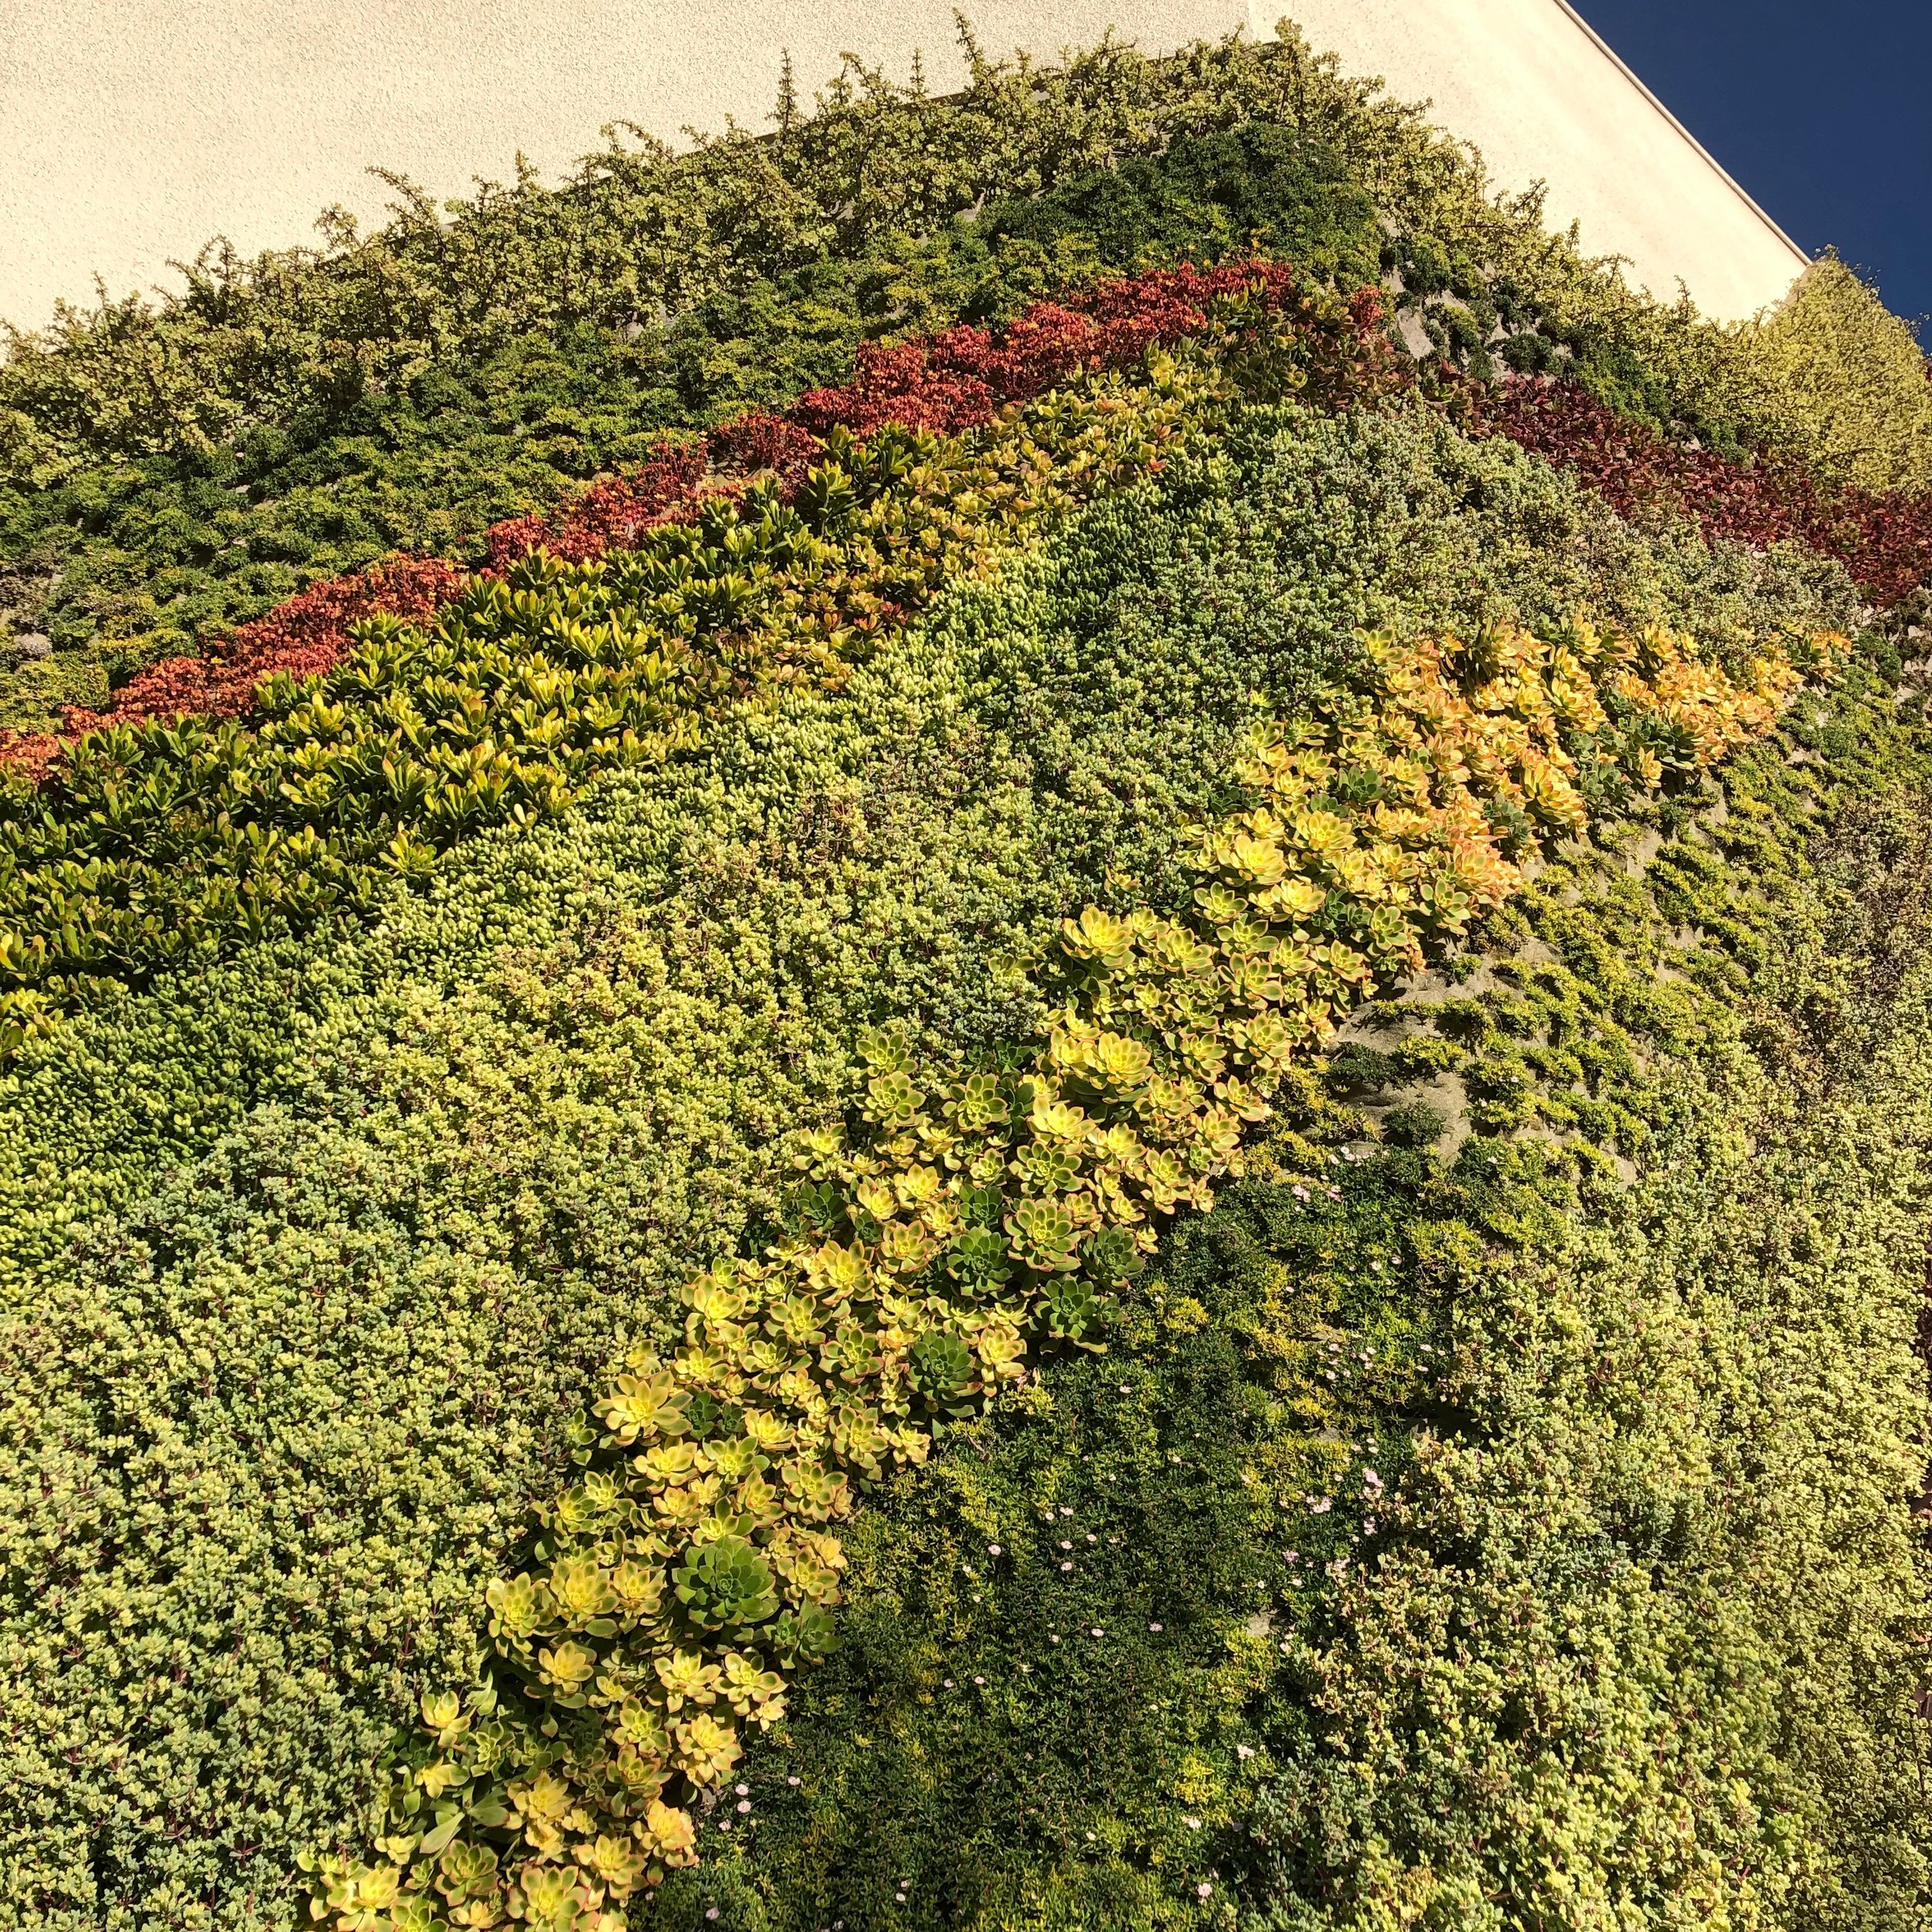 The wall has 5,000 plants and requires regular maintenance.